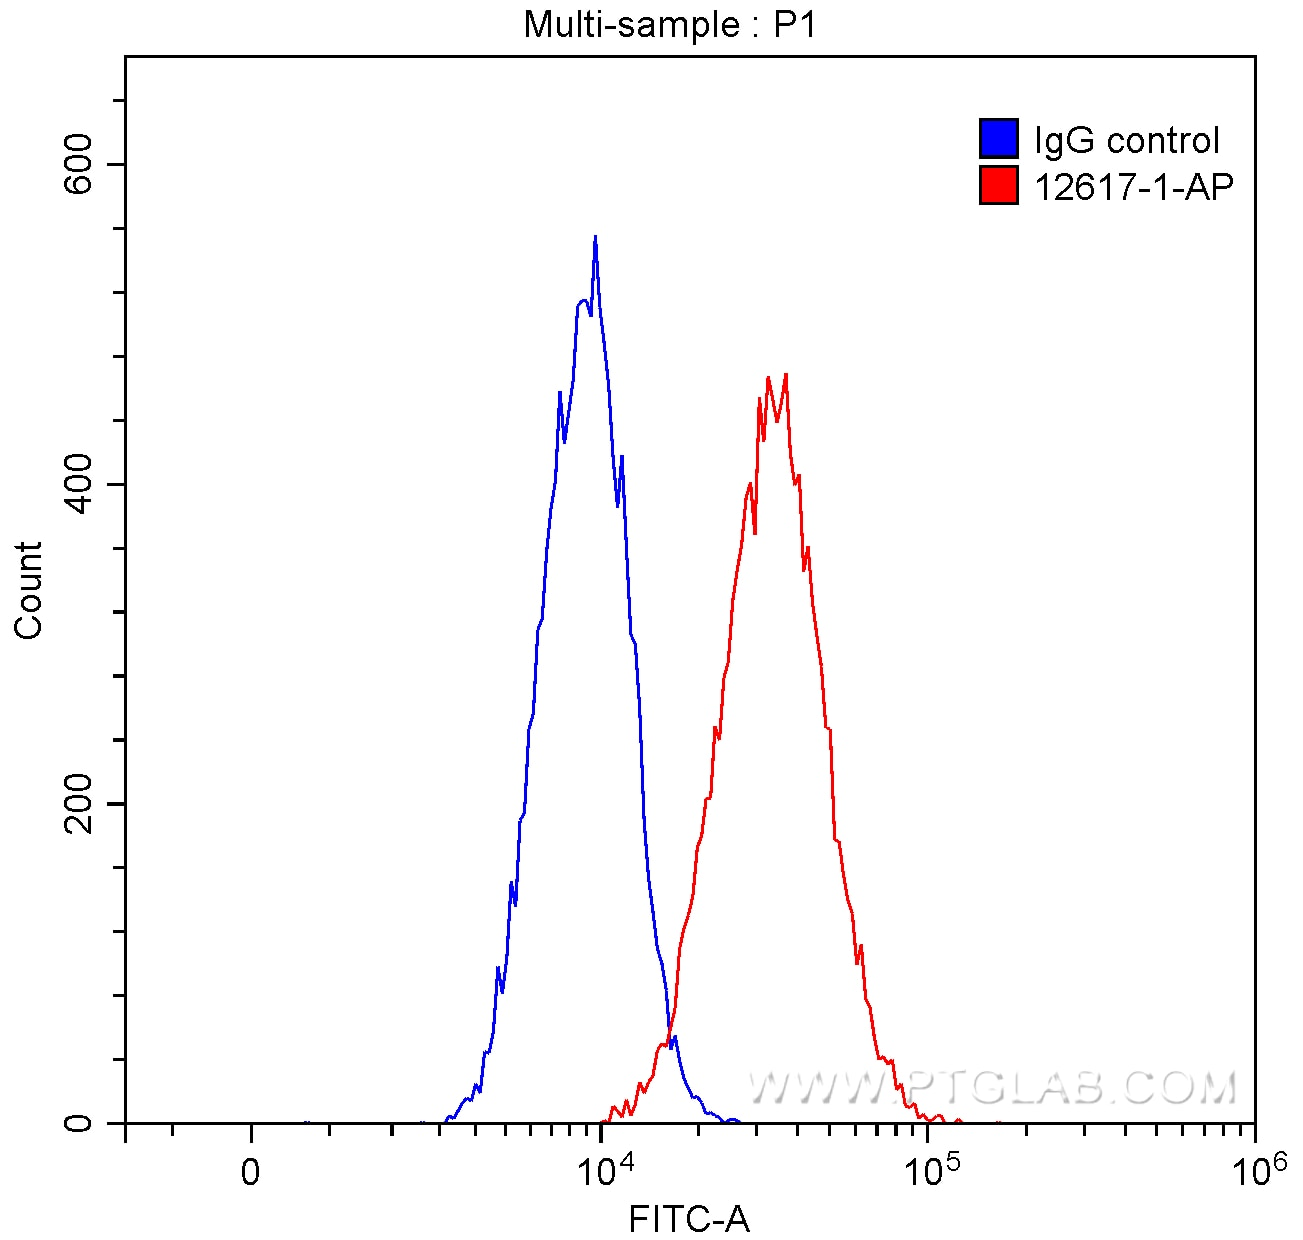 FC experiment of SH-SY5Y using 12617-1-AP